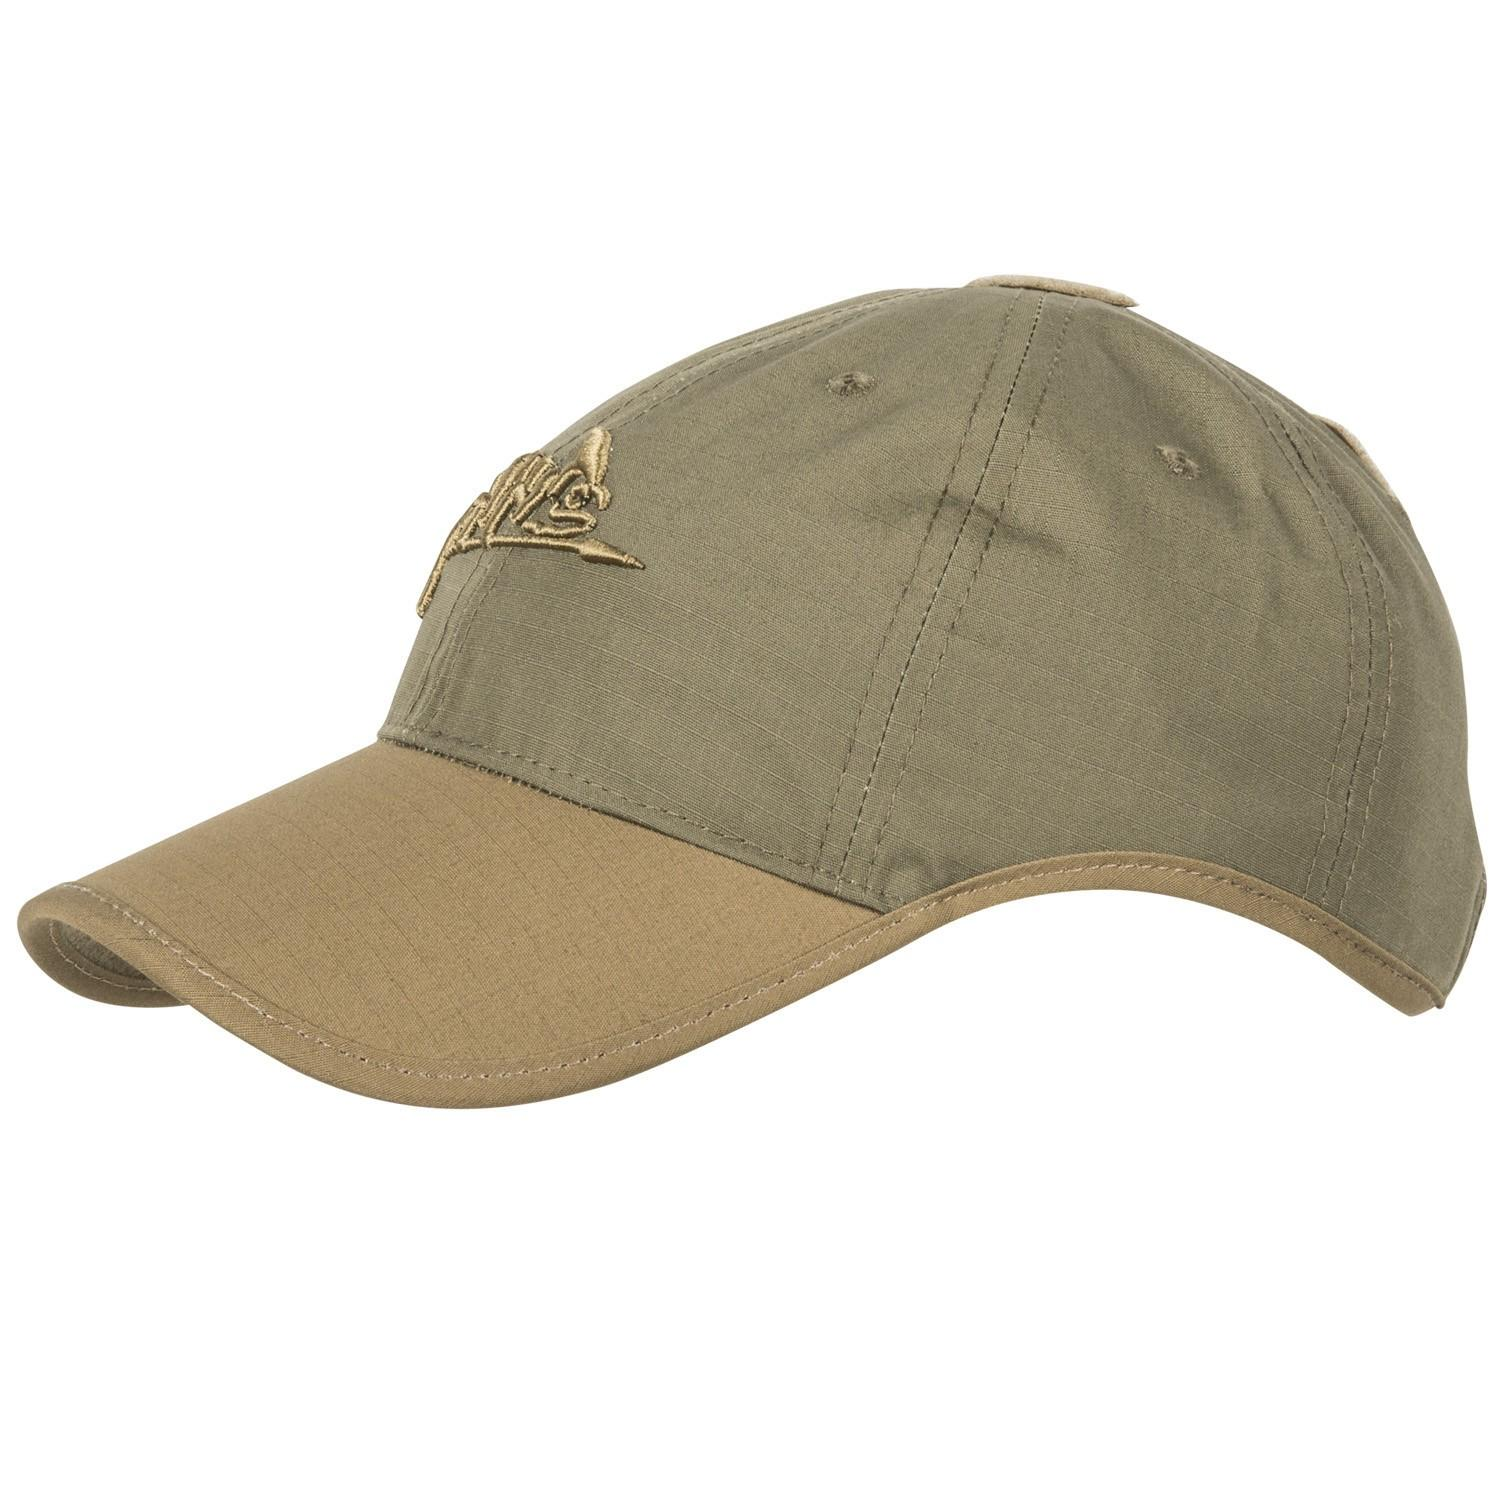 Gorra con logo Helikon-Tex - Verde adaptative, Coyote/Tan - Rebel Replicas